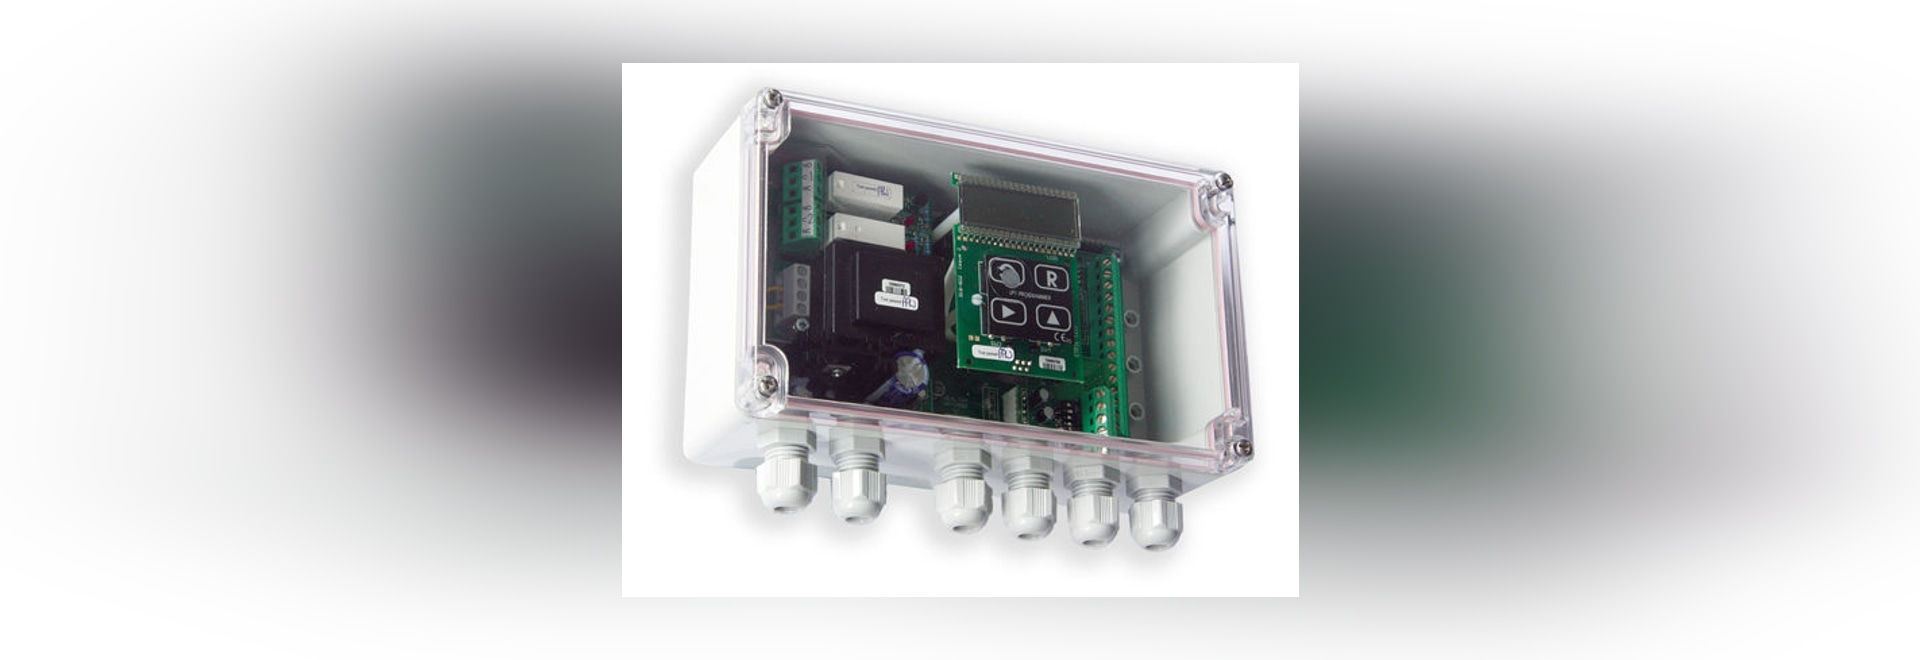 New Load Cell Amplifier By Thames Side Sensors